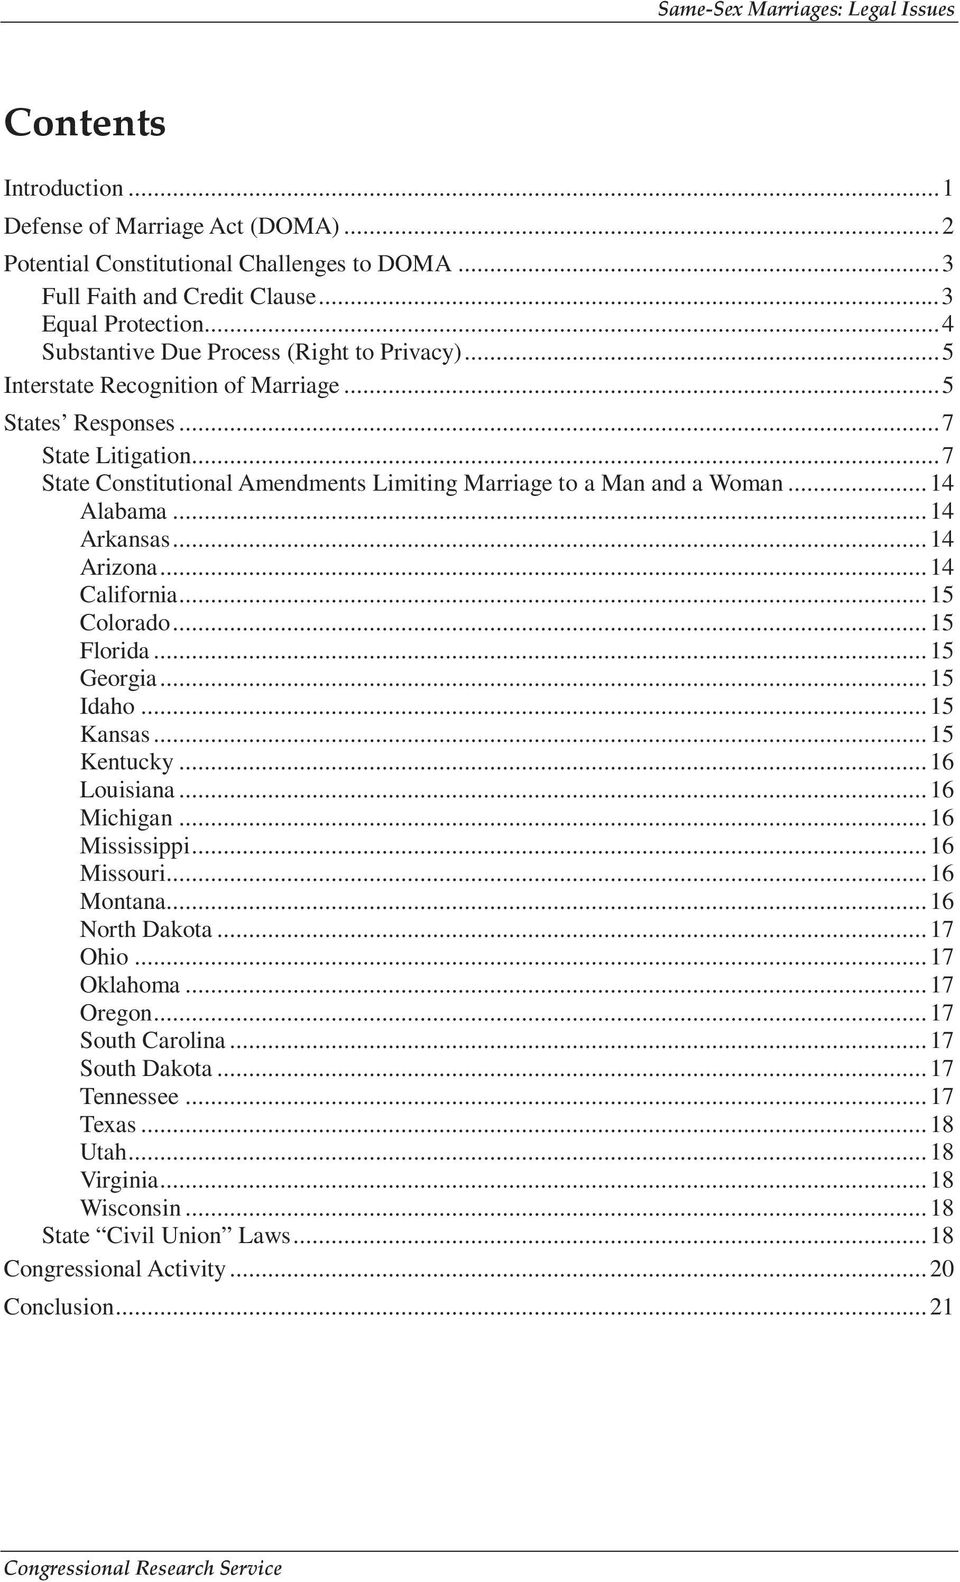 ..7 State Constitutional Amendments Limiting Marriage to a Man and a Woman...14 Alabama...14 Arkansas...14 Arizona...14 California...15 Colorado...15 Florida...15 Georgia...15 Idaho...15 Kansas.